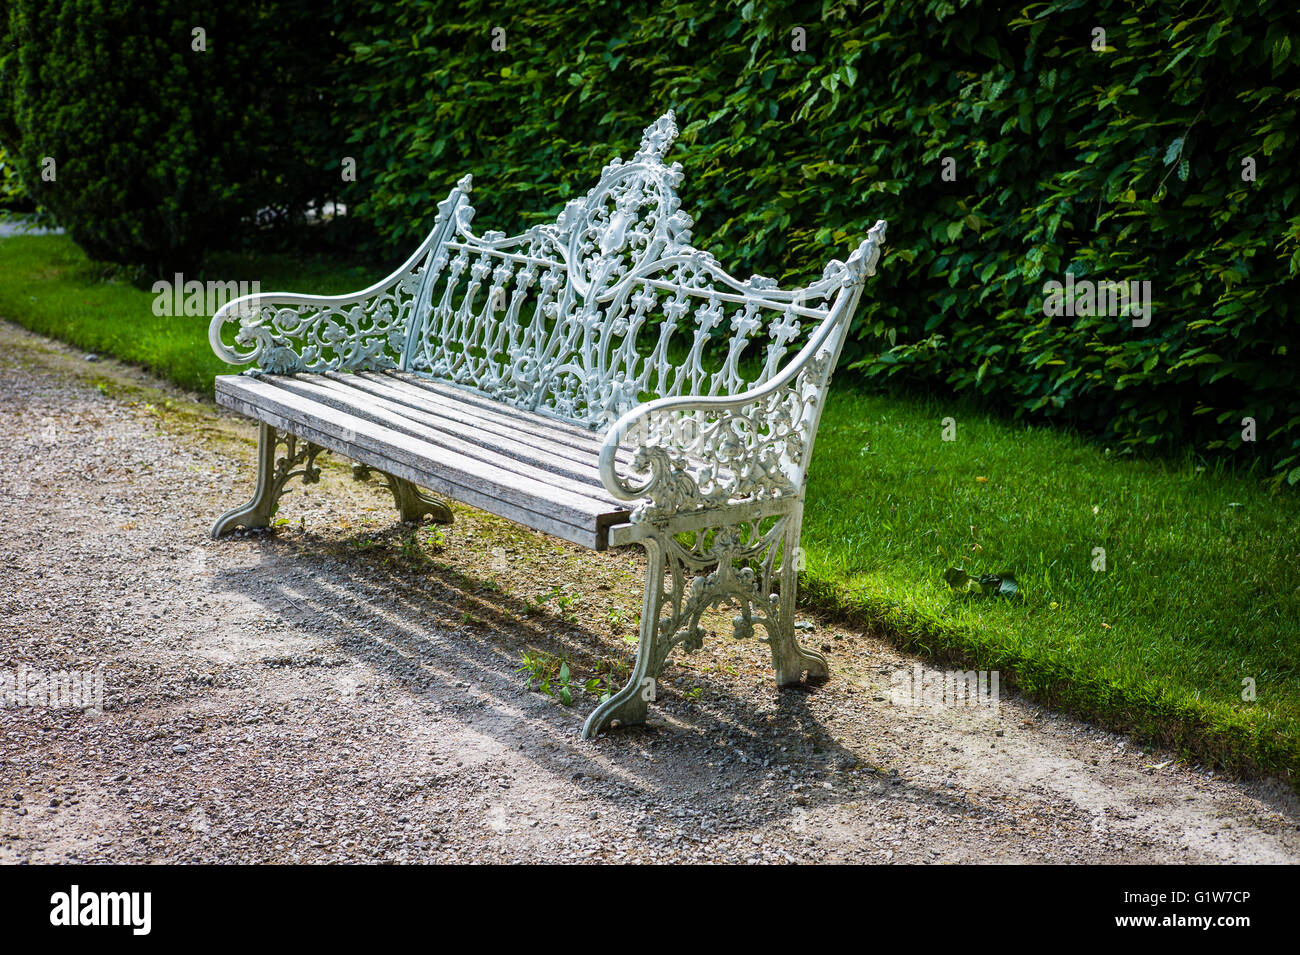 Old cast iron bench seat in garden open to the public in Cumbria UK Stock Photo